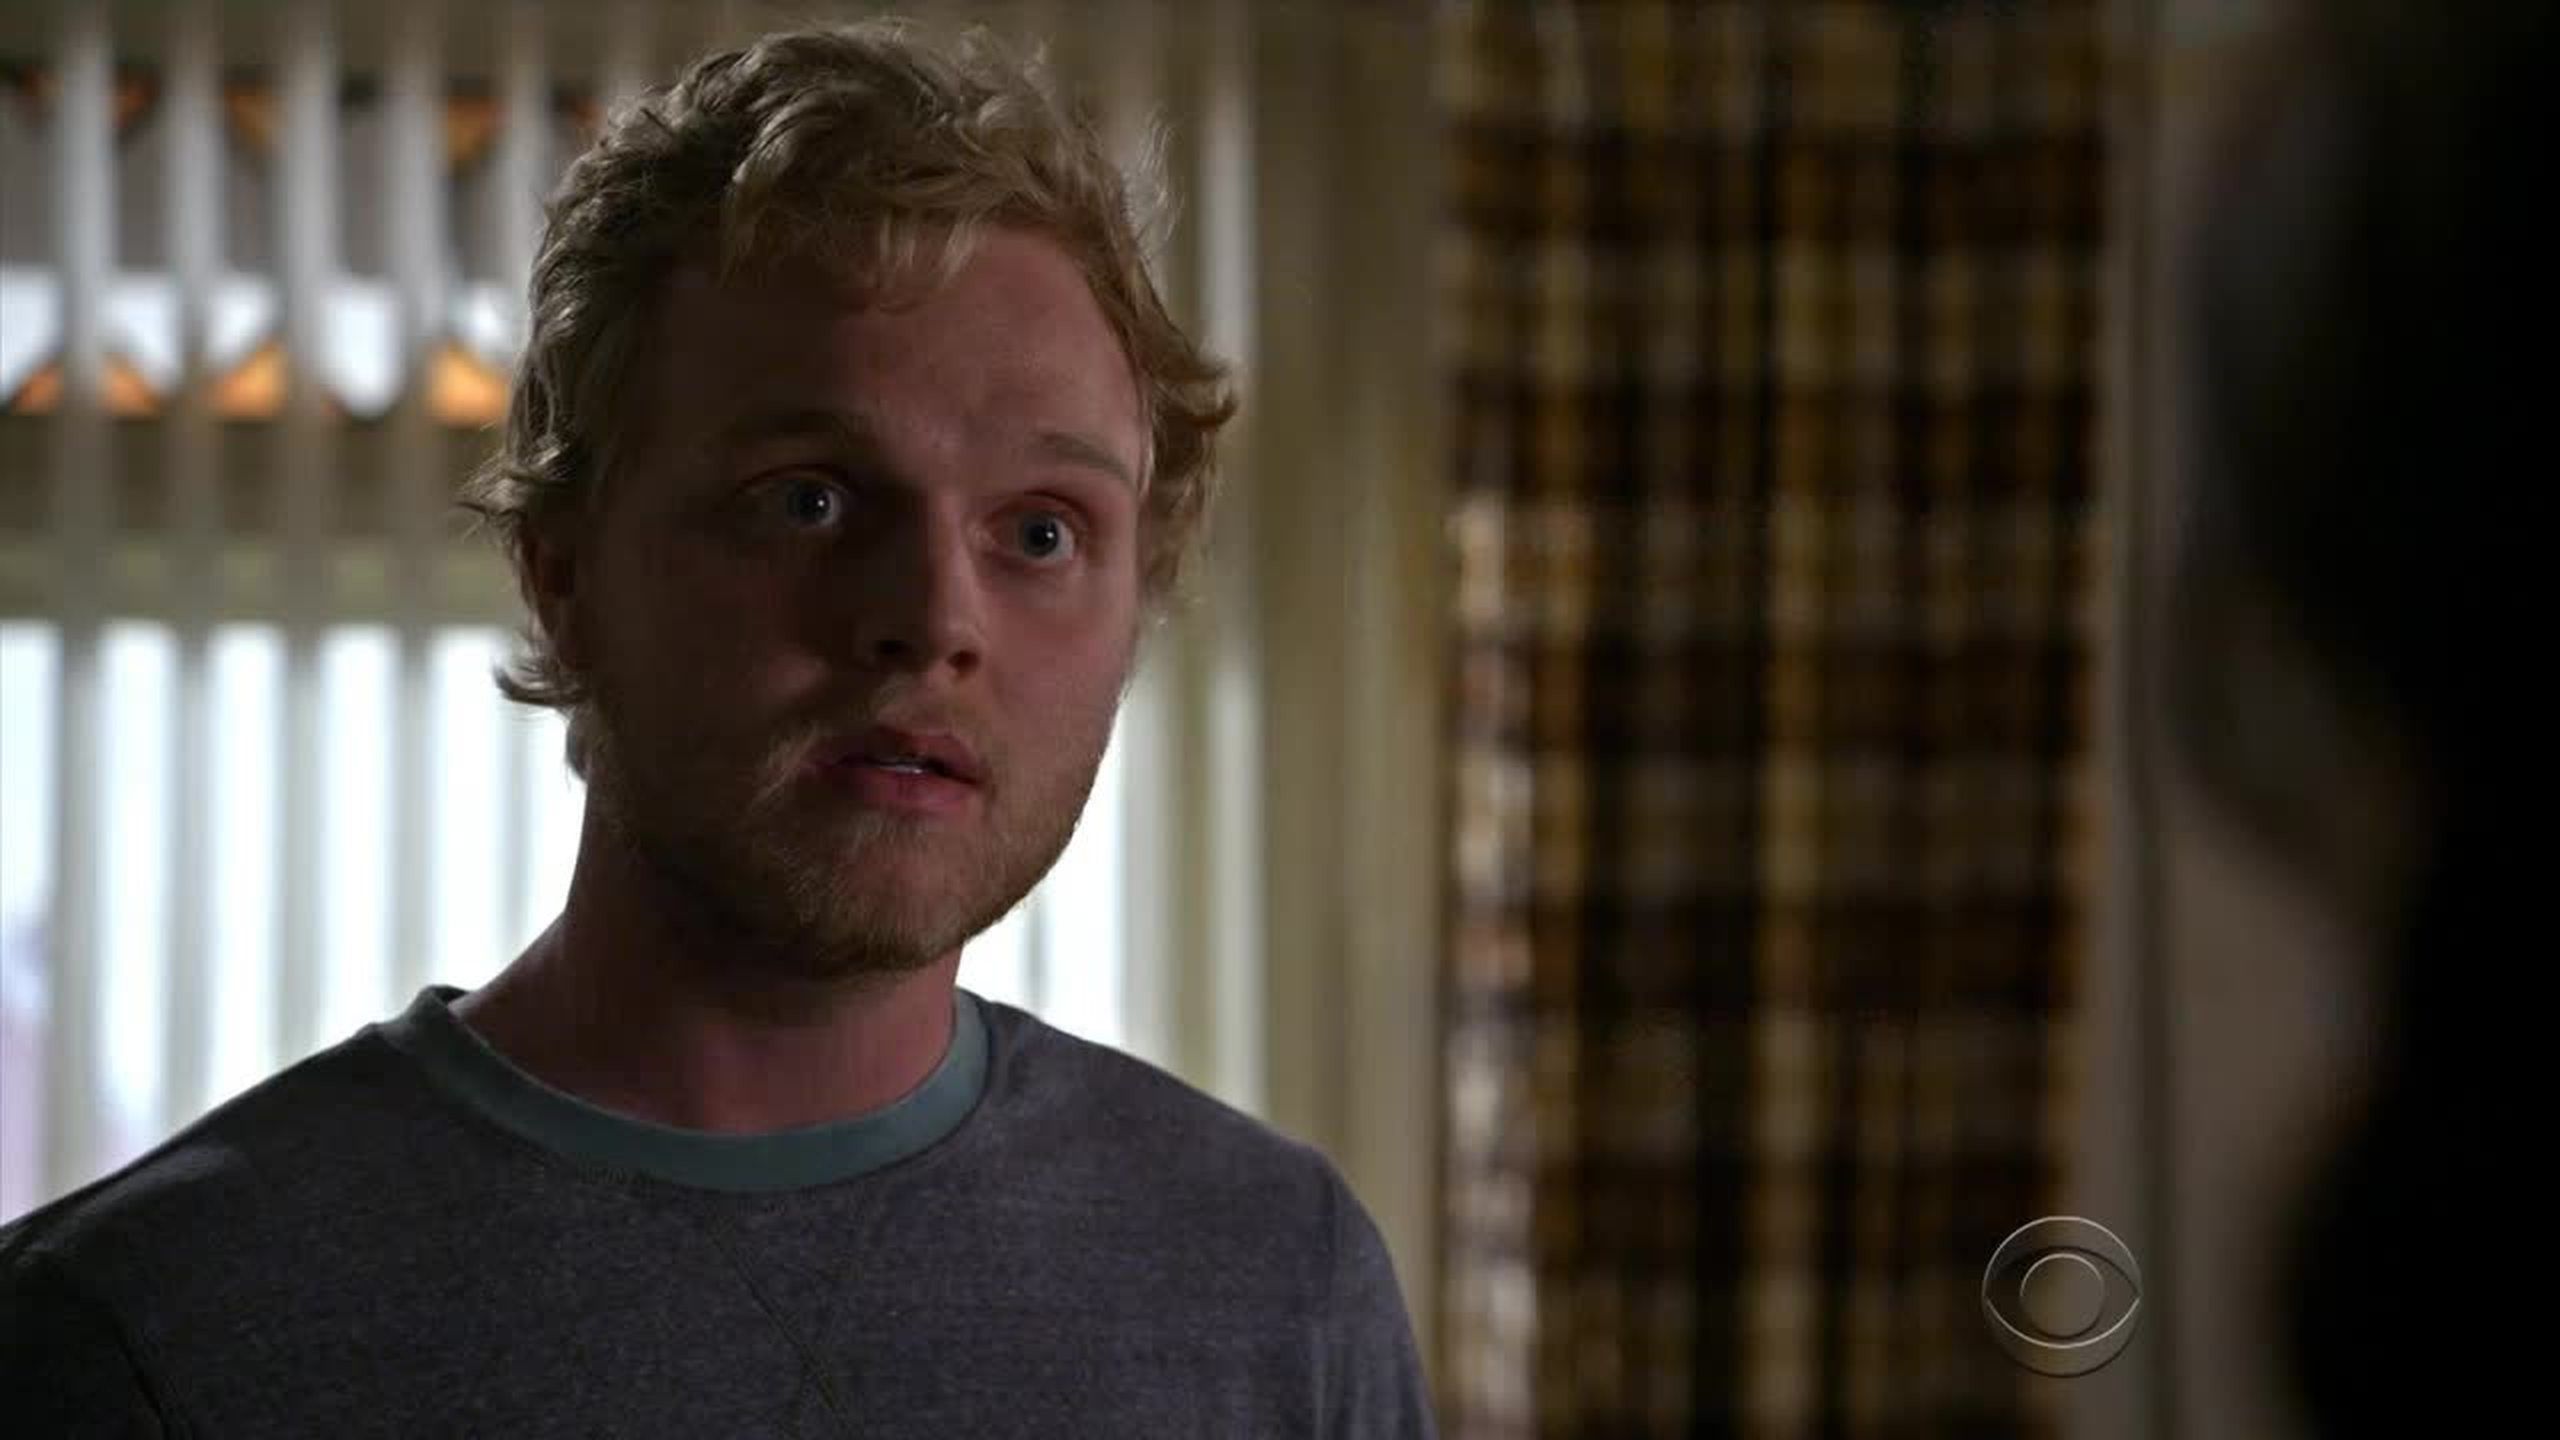 Wow great acting from Joe Adler he was convincing as a nice guy in the mentalist and still is as a psychopath here